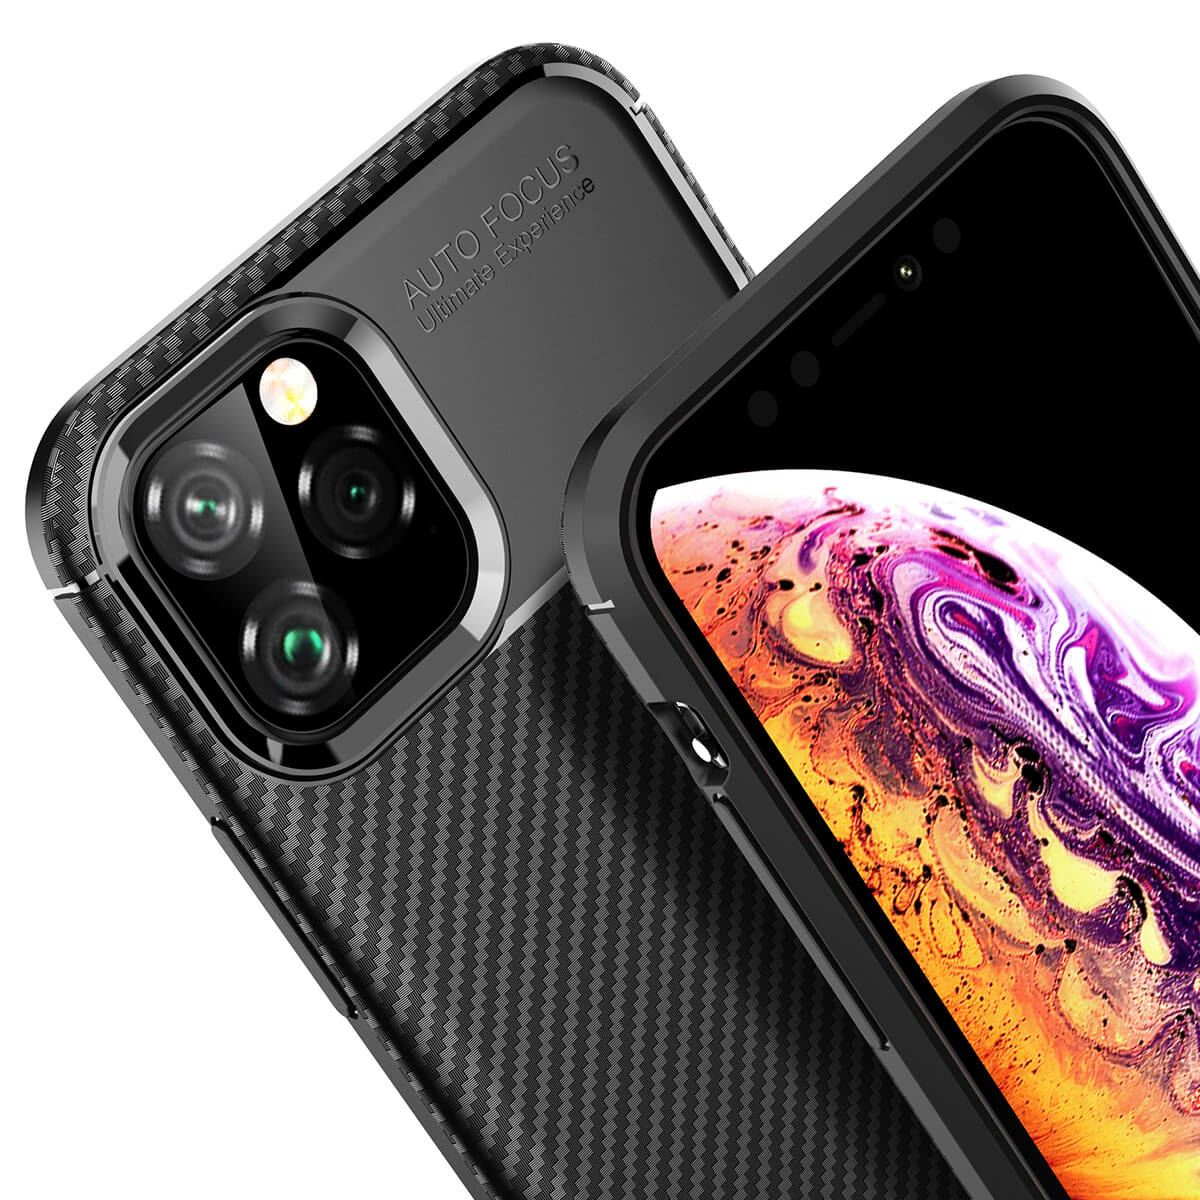 Carbon-Fibre-Soft-Case-For-iPhone-11-X-XR-Max-8-7-6-Plus-Slim-TPU-Silicone-Cover thumbnail 8